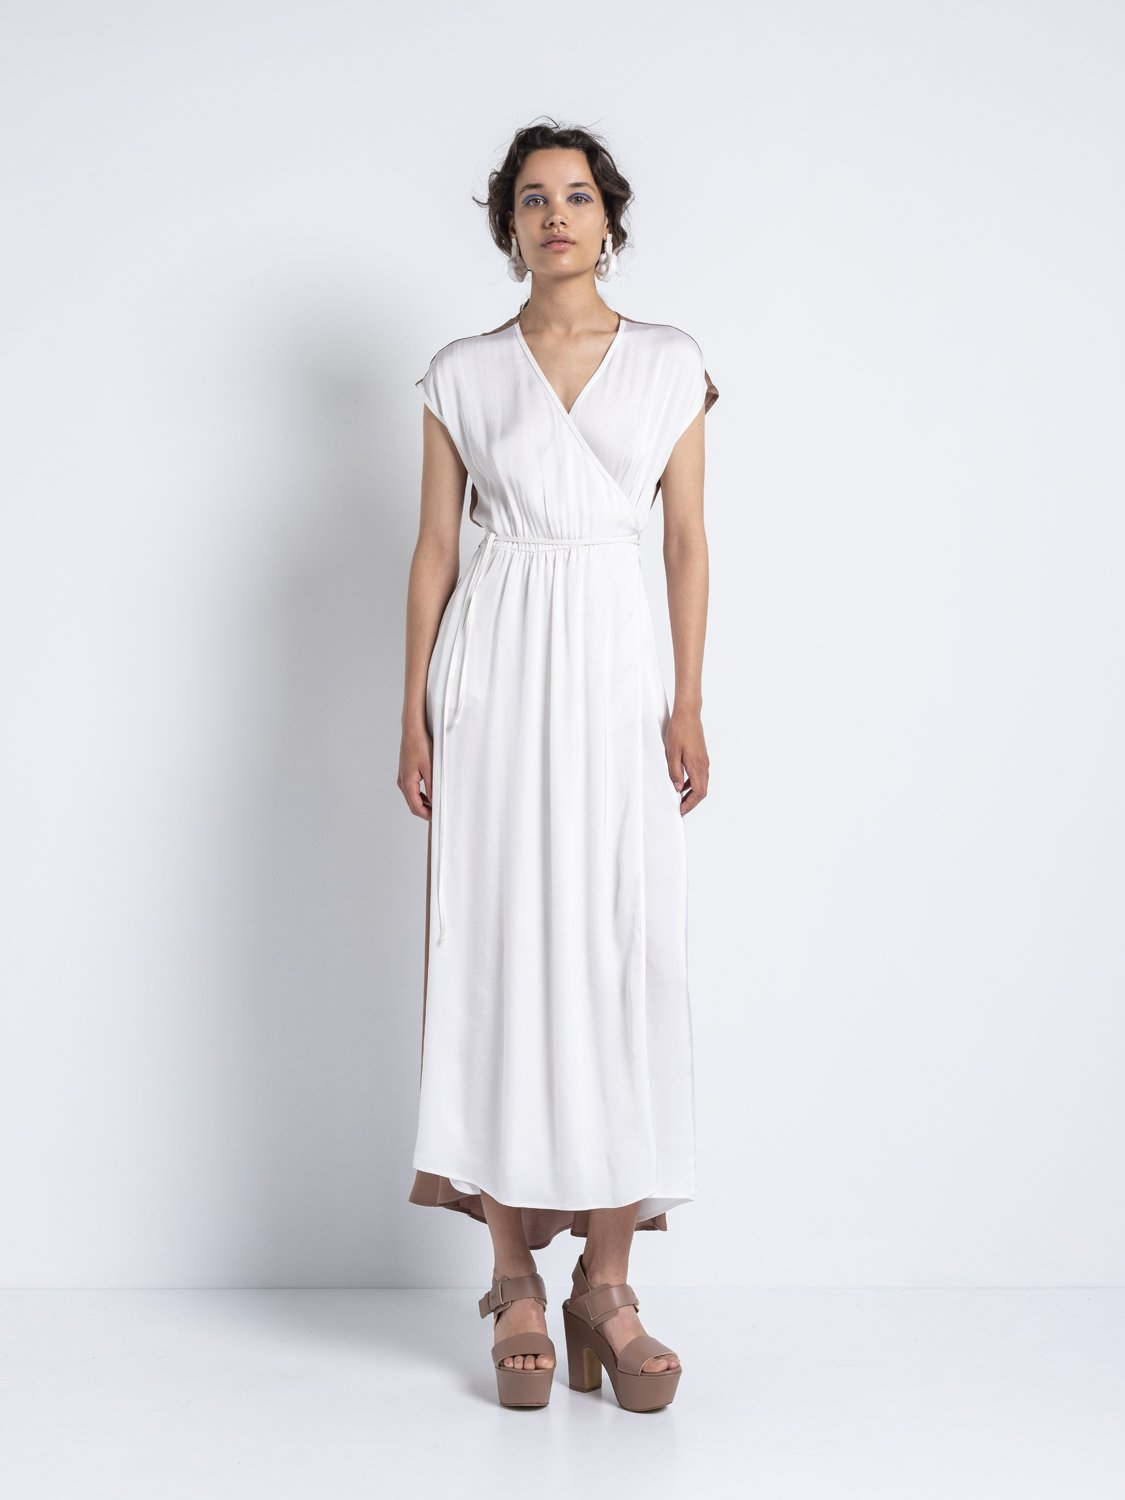 IOANNA KOURBELA Gentle Fluidity – Crossed Dress (White and Clay)